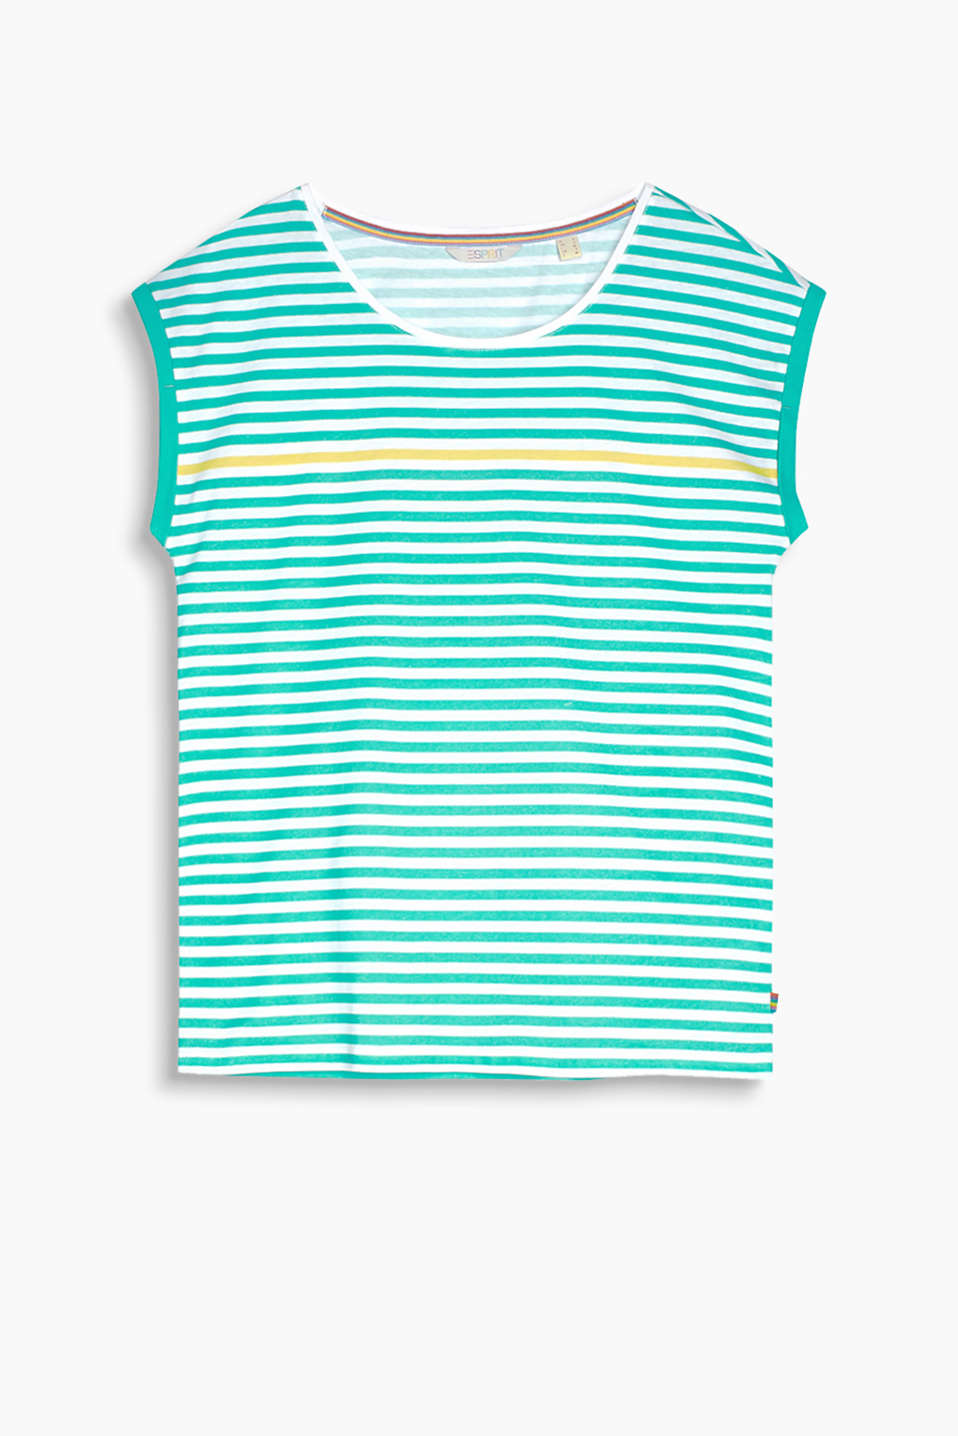 Retro Collection – T-shirt with bold stripes, organic cotton